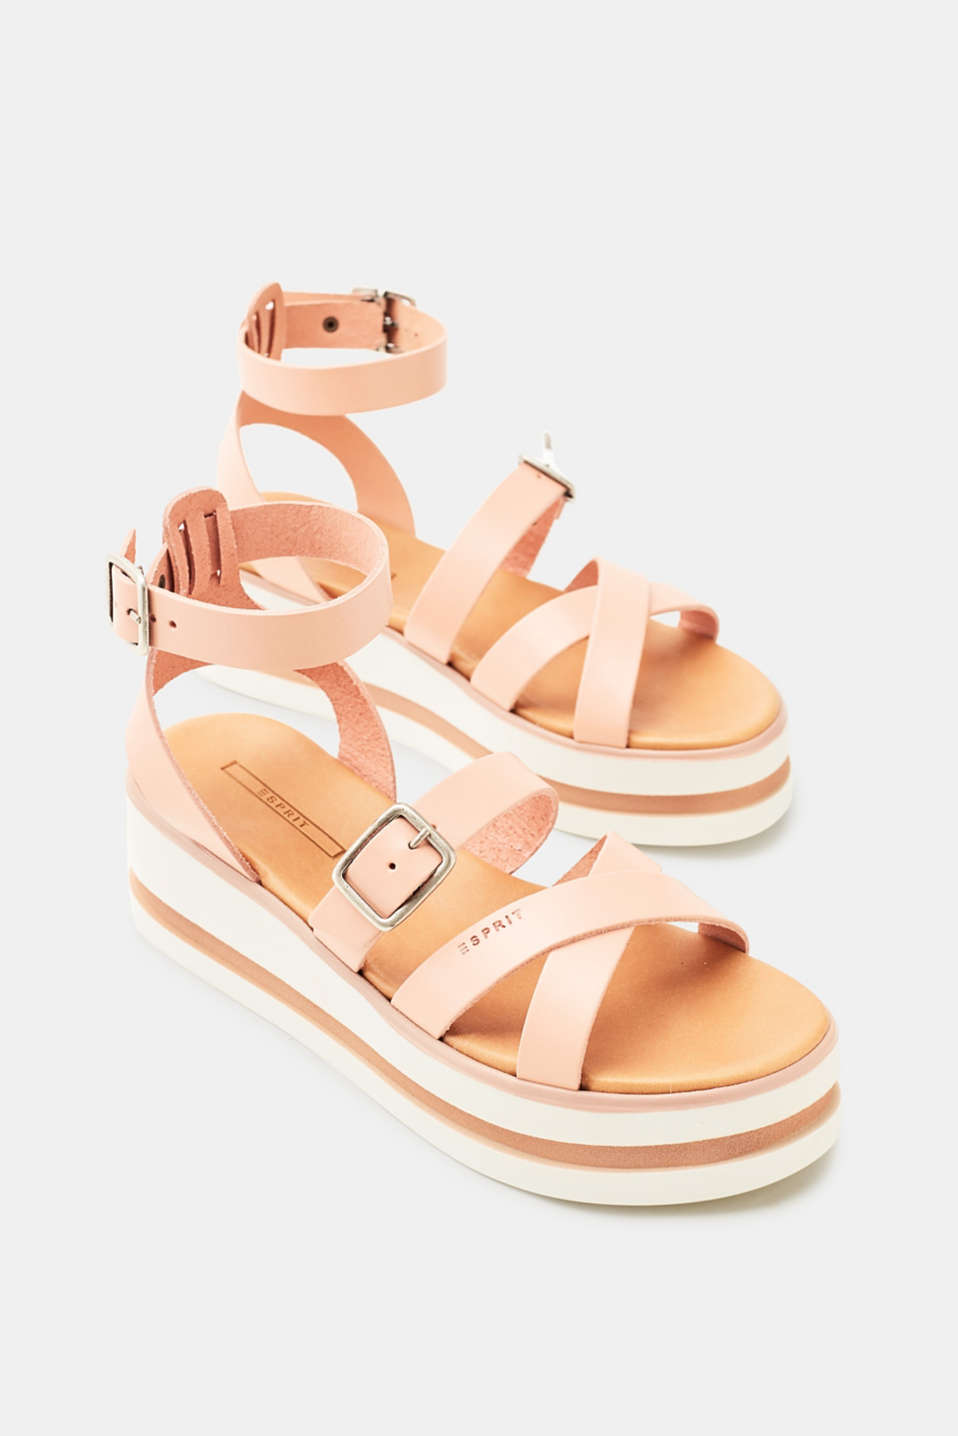 Platform sandals with leather straps